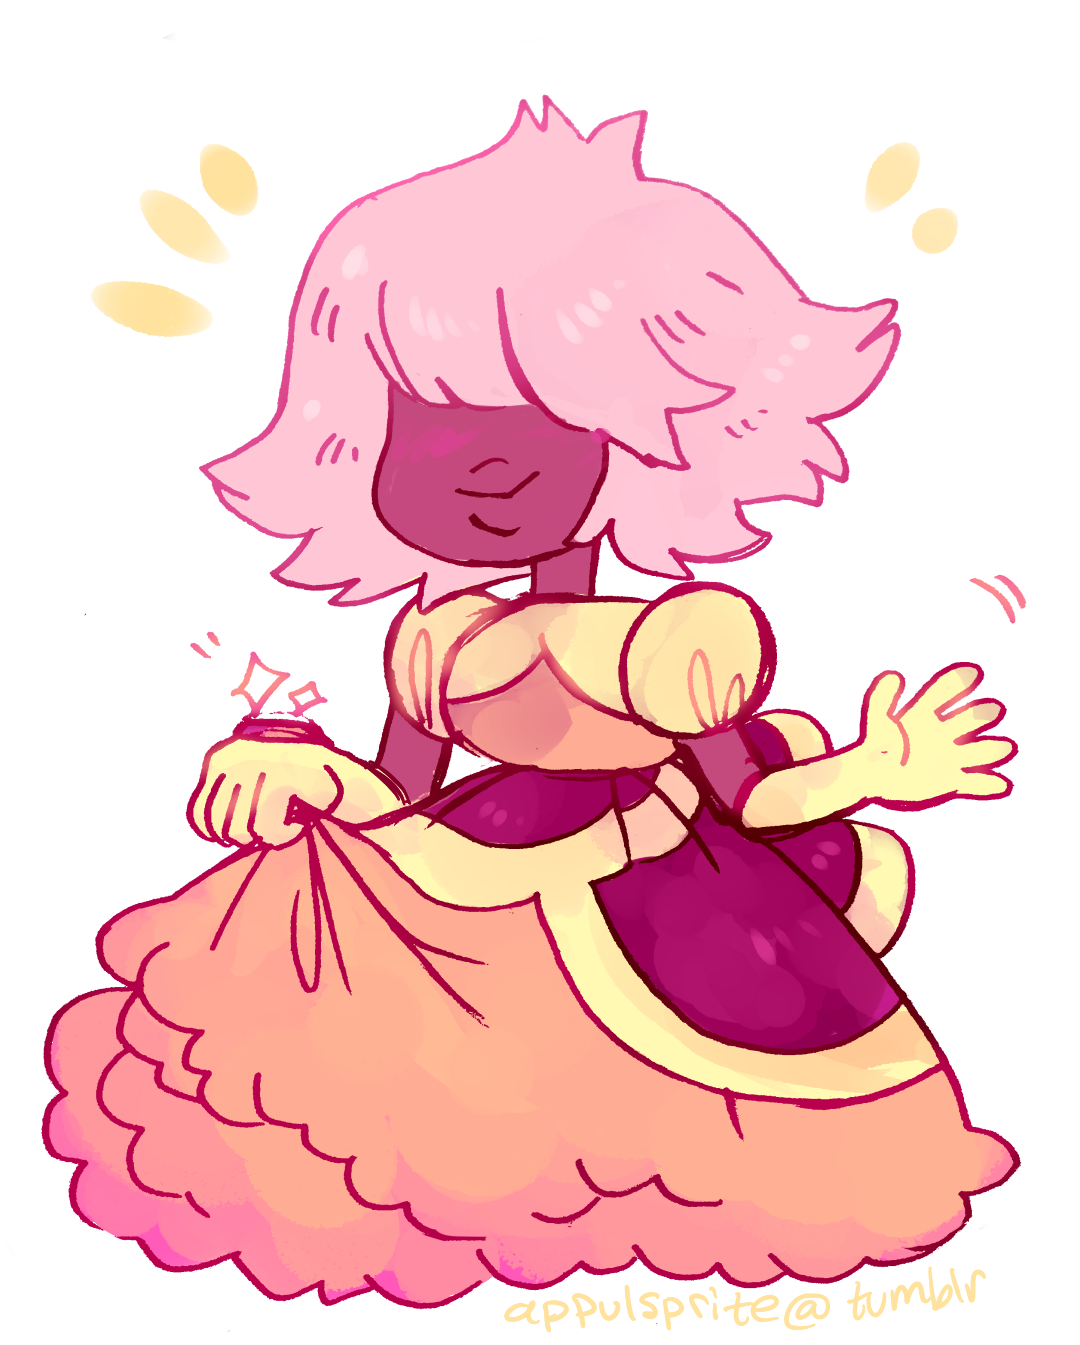 GUYS I LOVE HER SO MUCH I REALLY REALLY LOVE HER! hhhhh i love the others as well, so much, but wow! pad is so fantastic, what a beautiful cinnamon roll! thank you @crewniverse